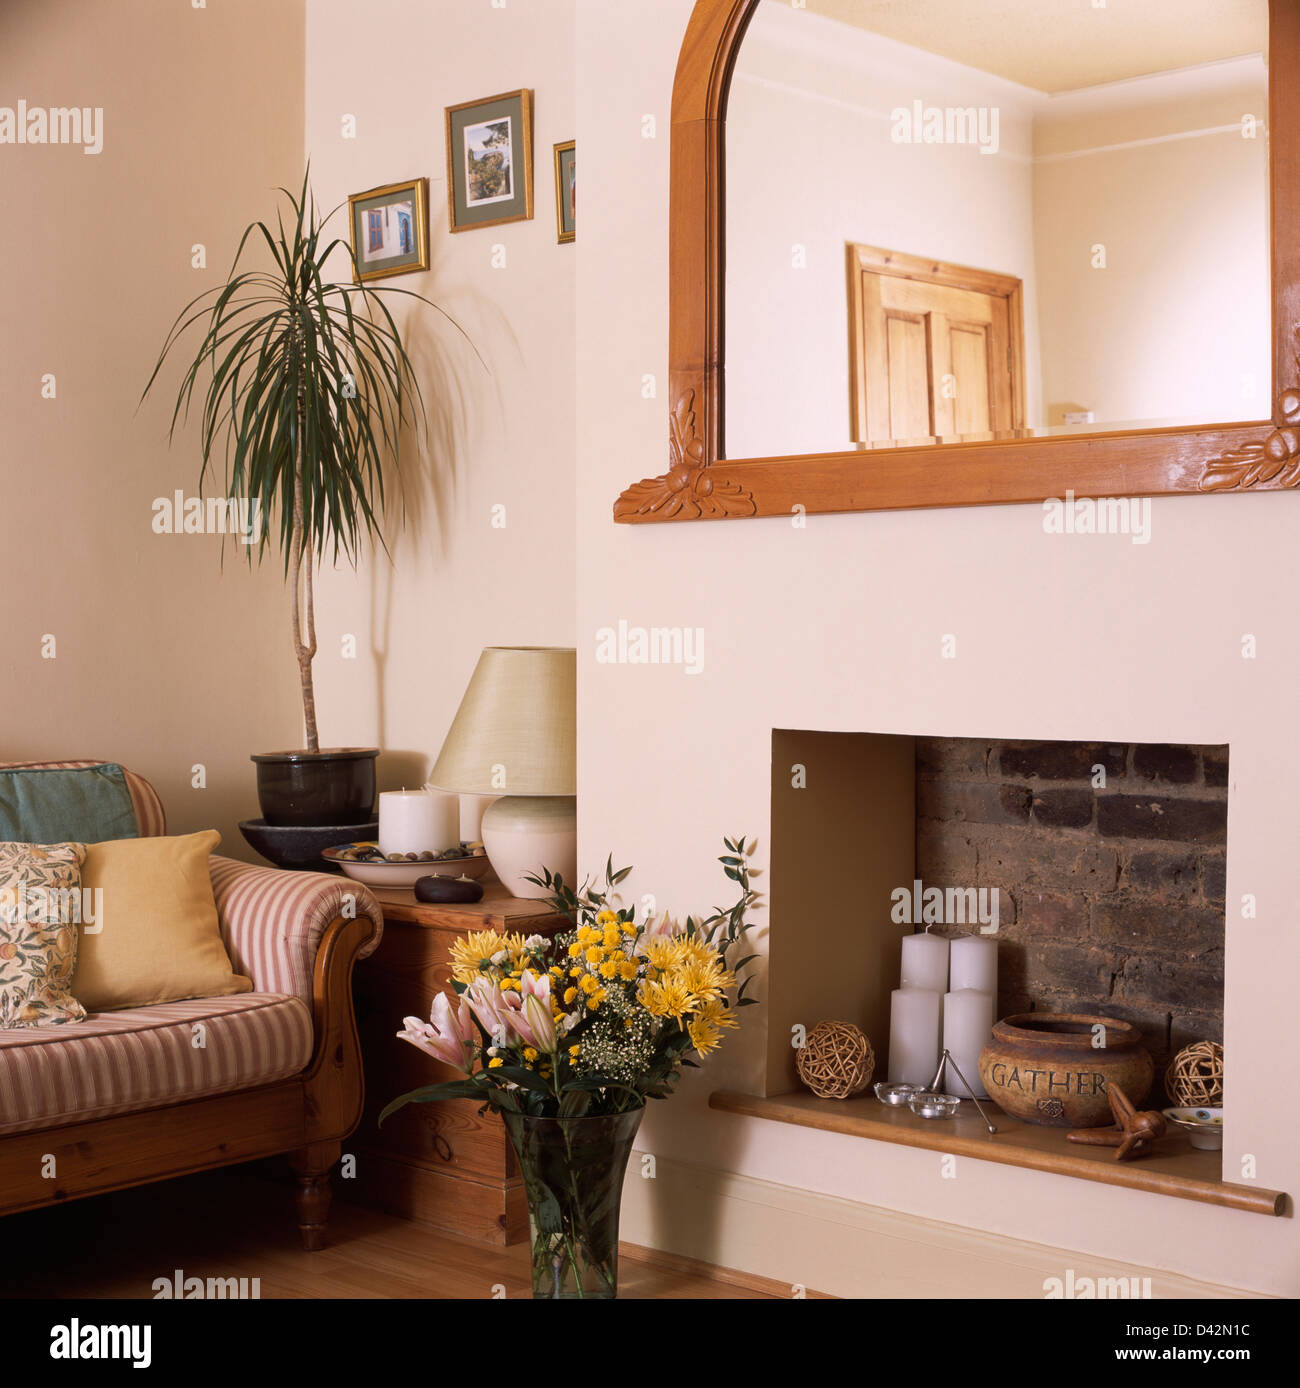 mirror above simple fireplace alcove with candles in economy style